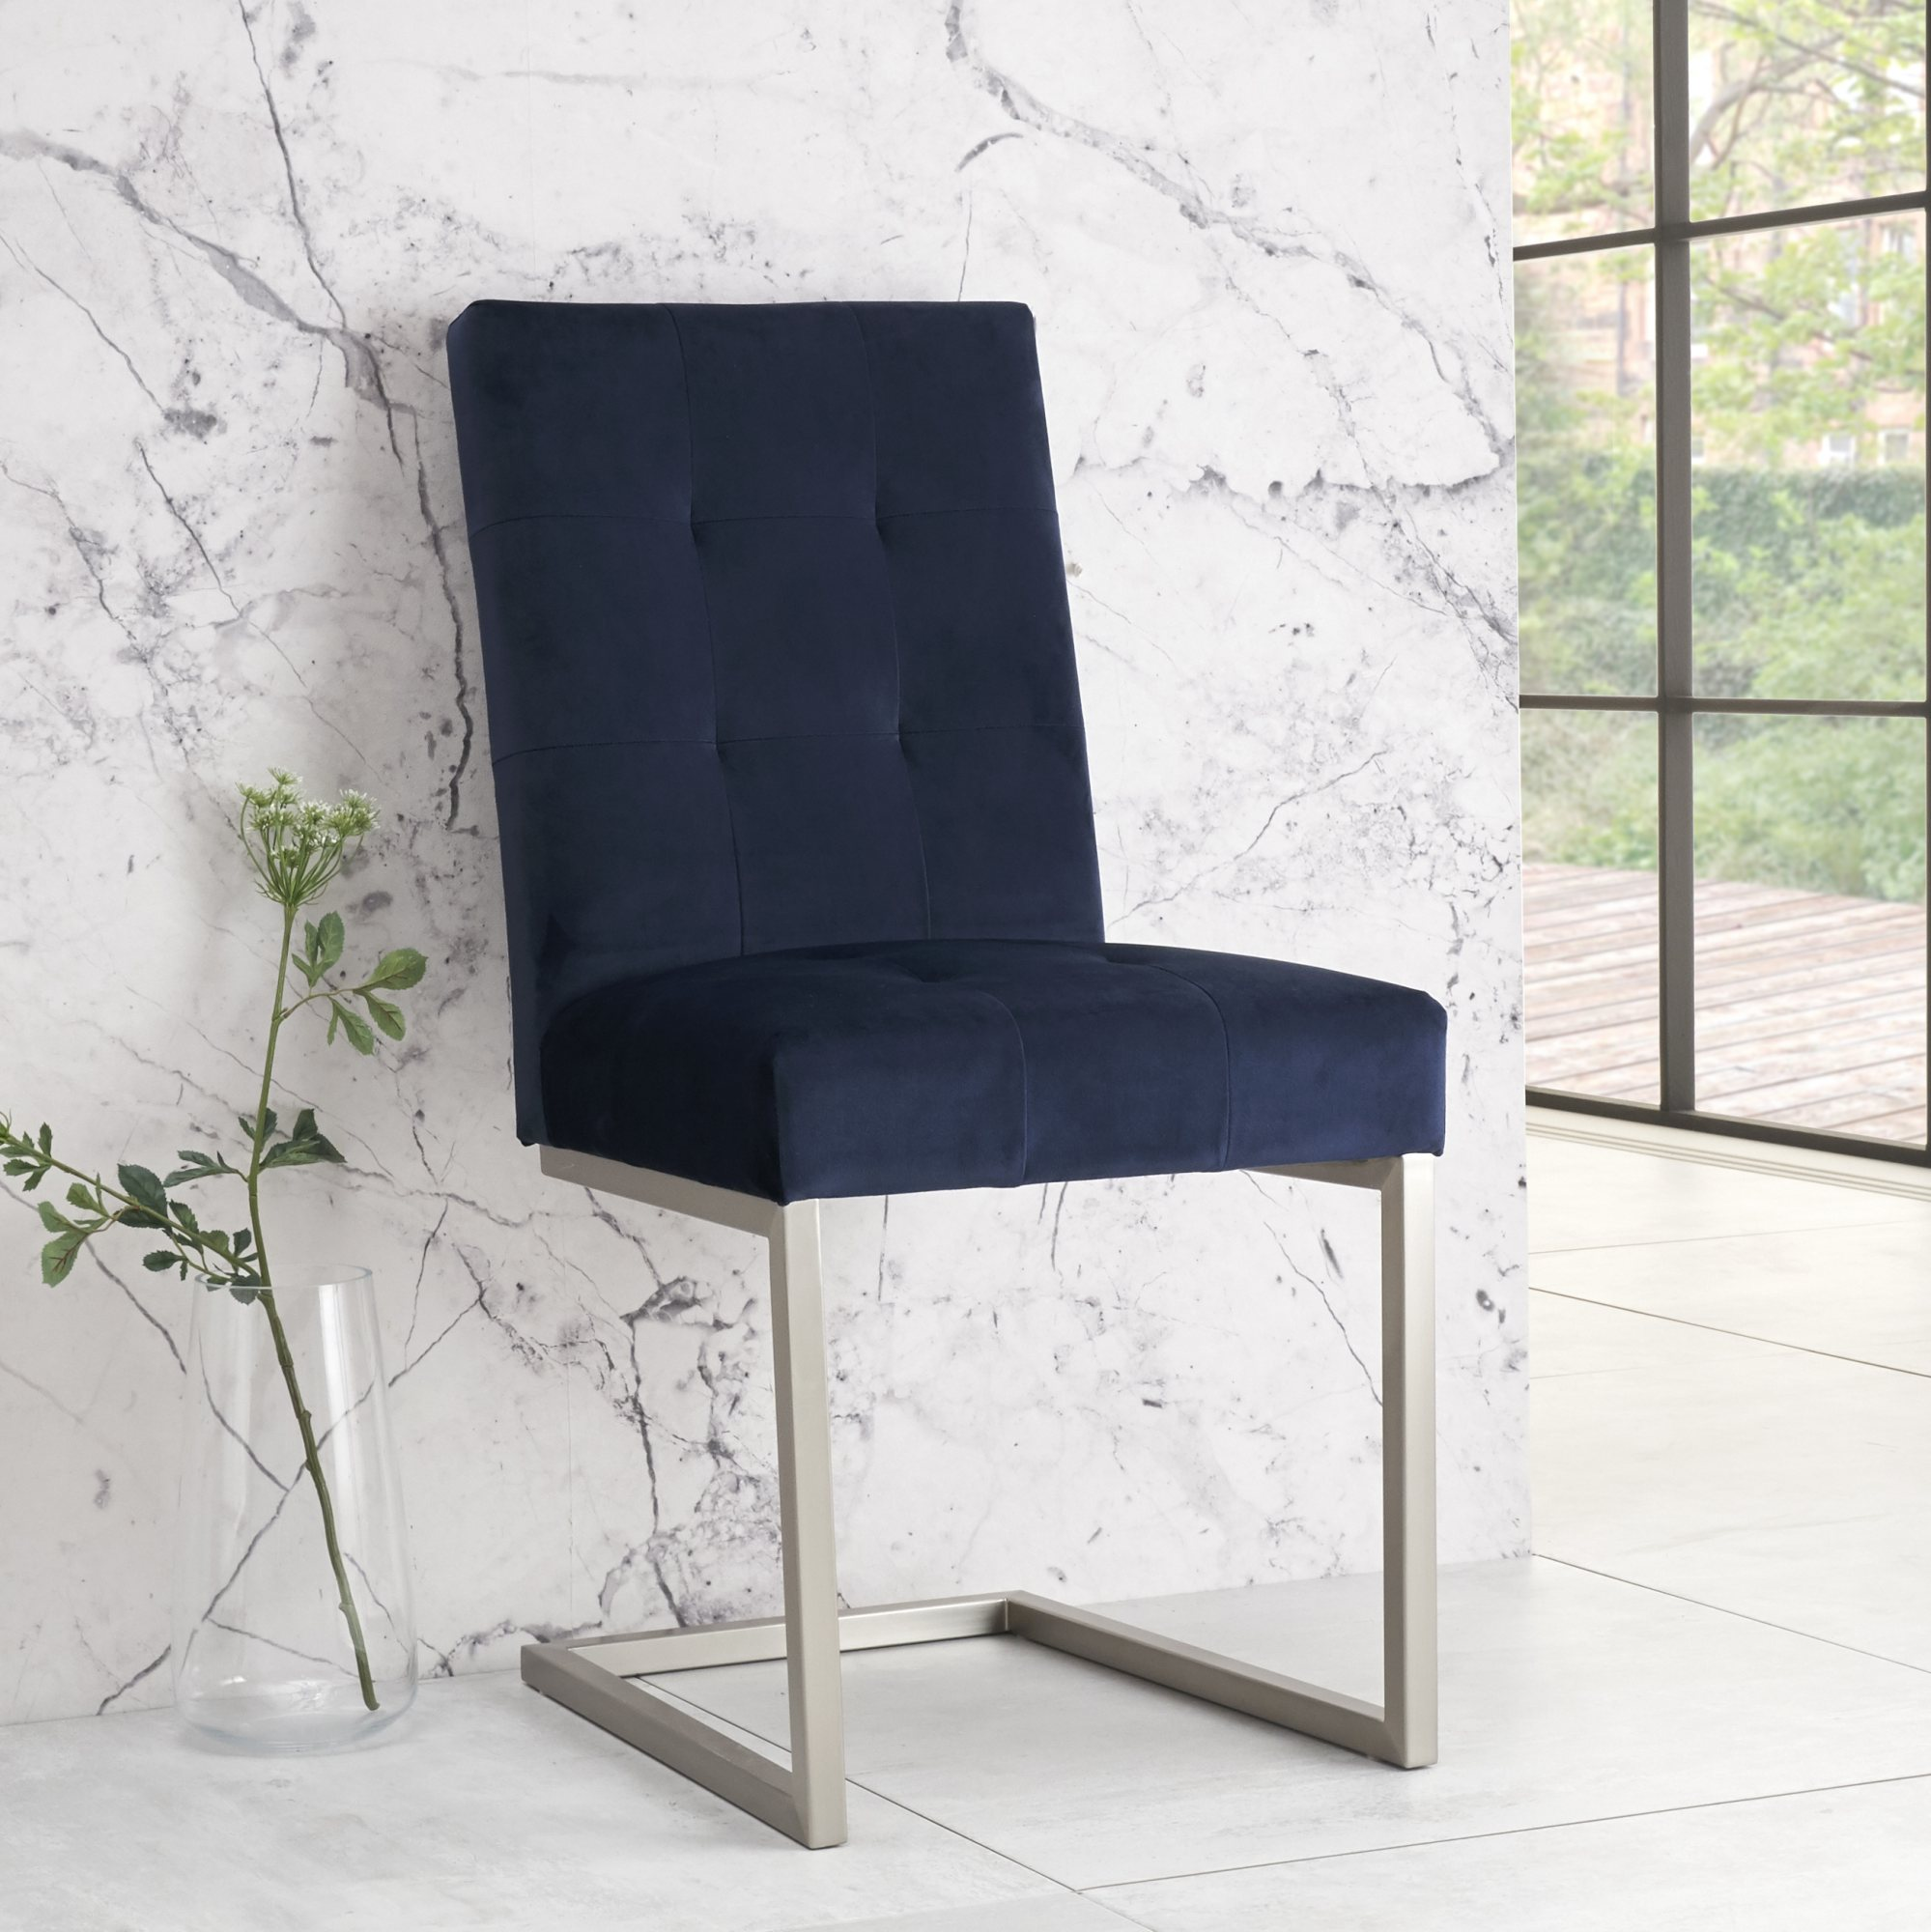 BRINDISI NAVY VELVET CANTER CHAIR